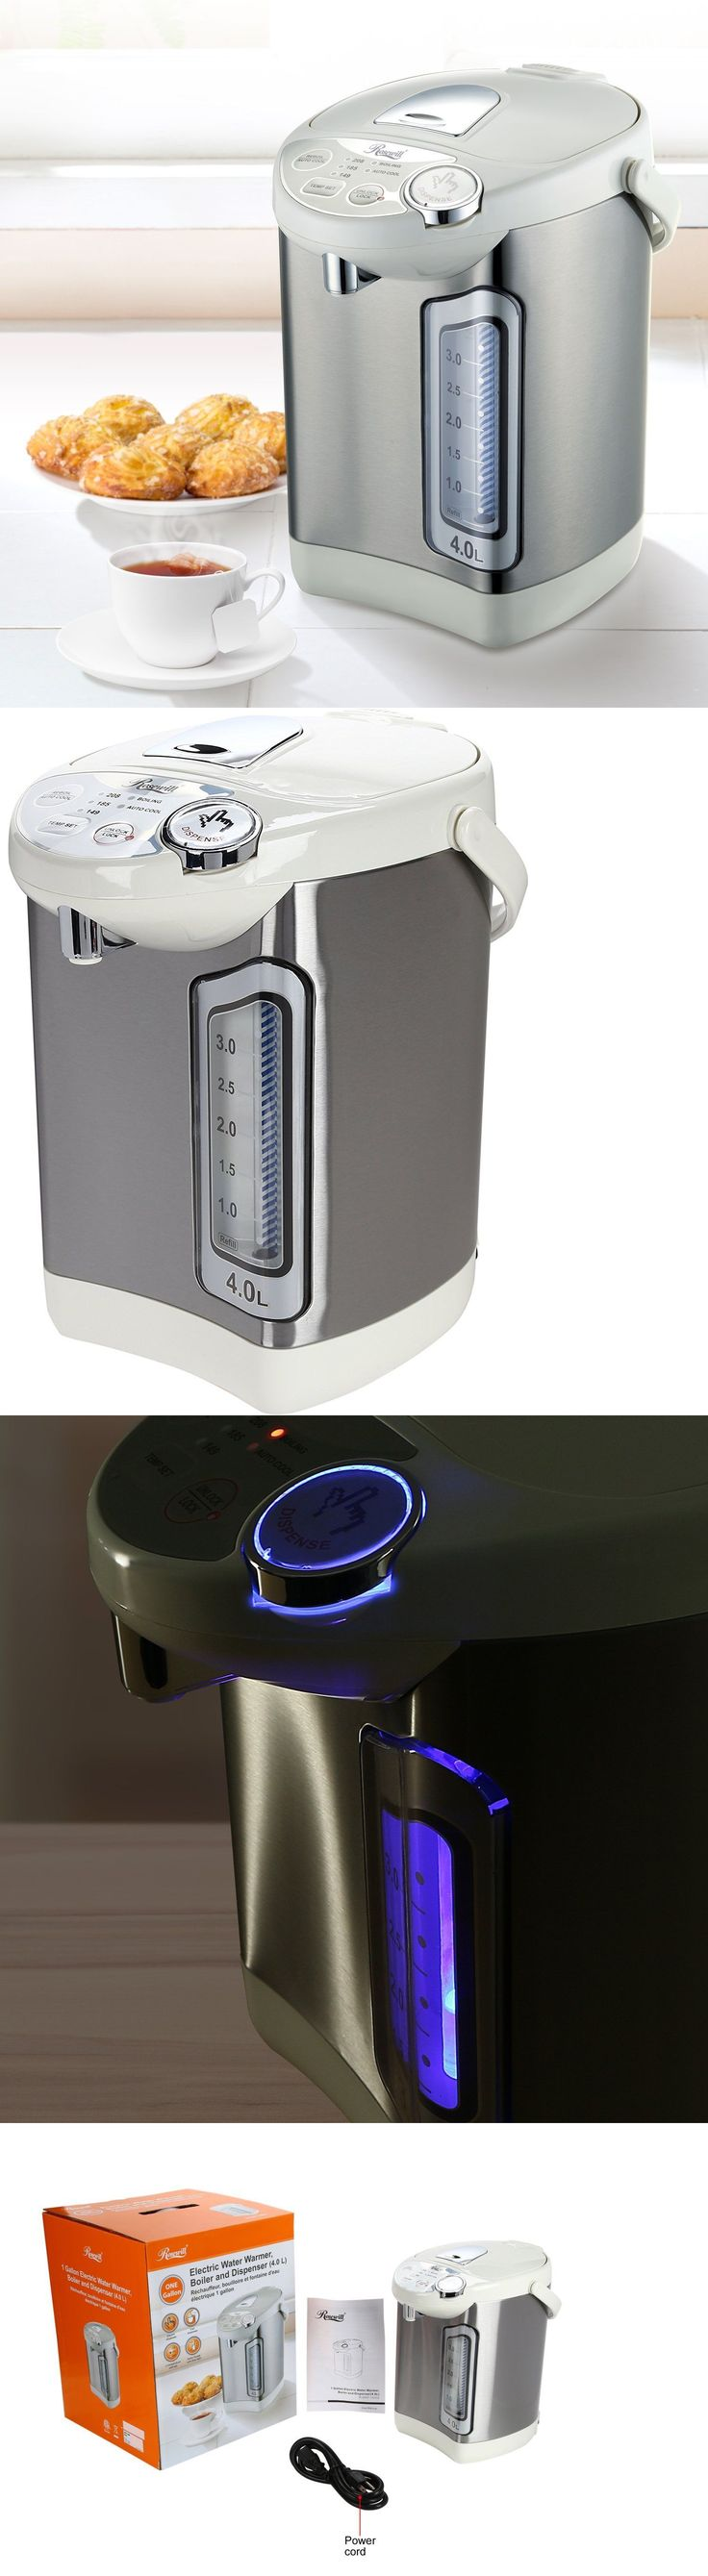 Portable Battery Powered Heater The 25 Best Small Portable Heater Ideas On Pinterest Portable